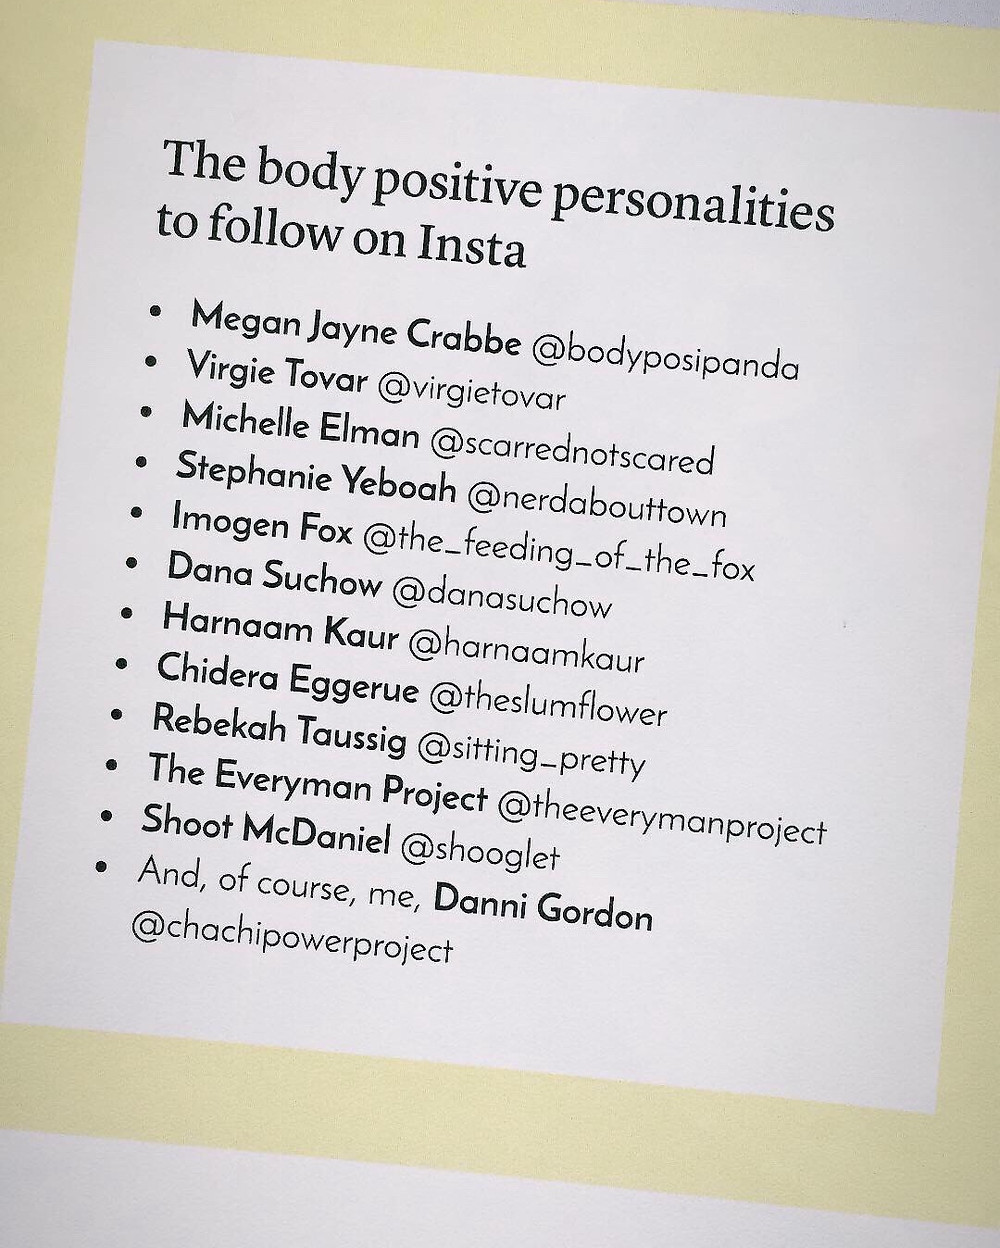 Hood Magazine: Top Body Positive Personalities by The Chachi Power Project